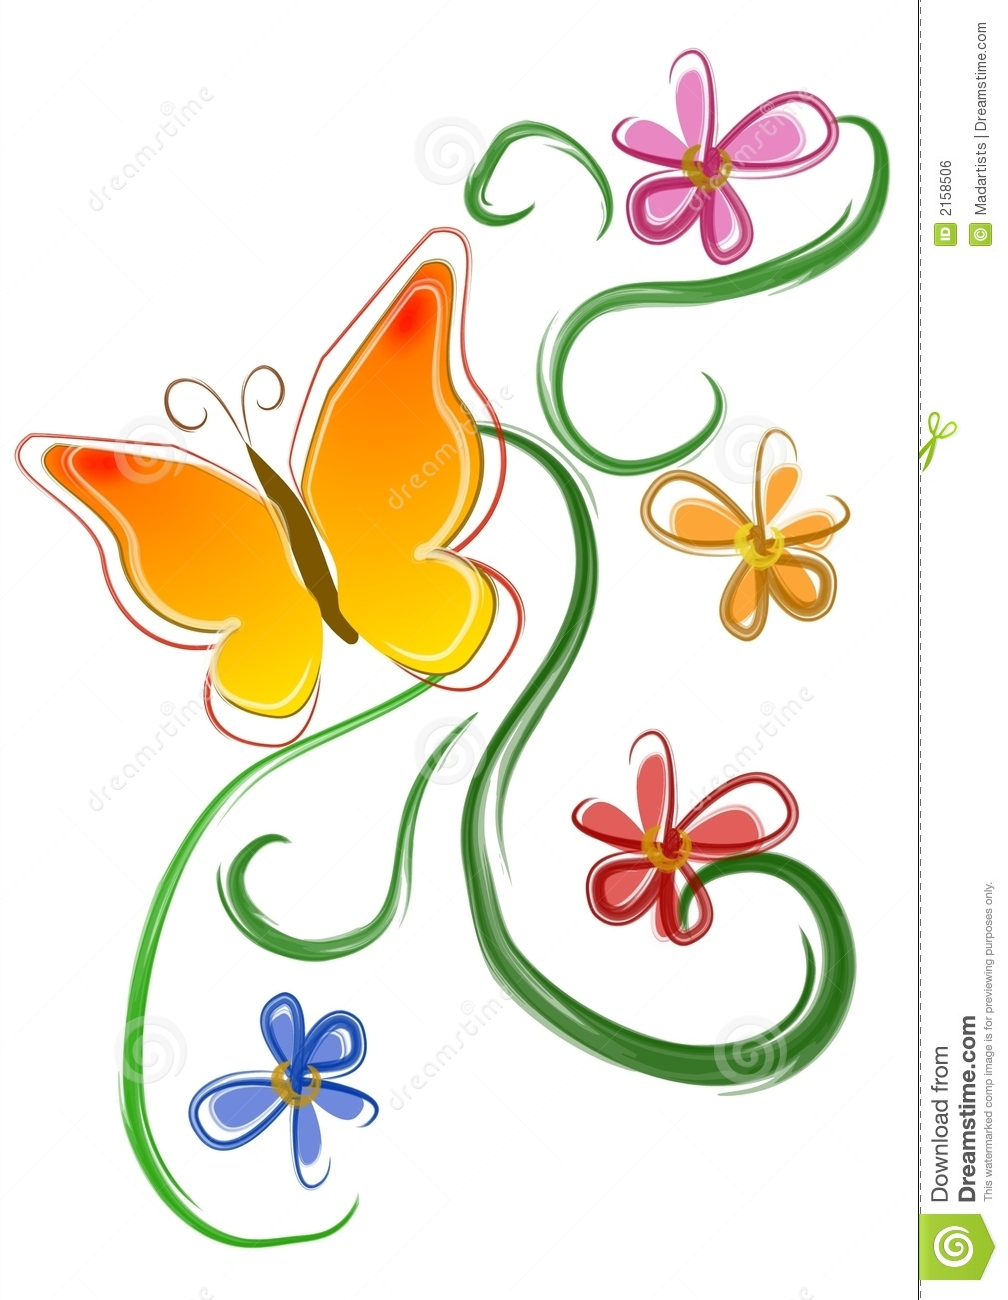 Royalty Free Stock Image  Butterfly Flowers Clip Art 01Flower And Butterfly Border Clip Art